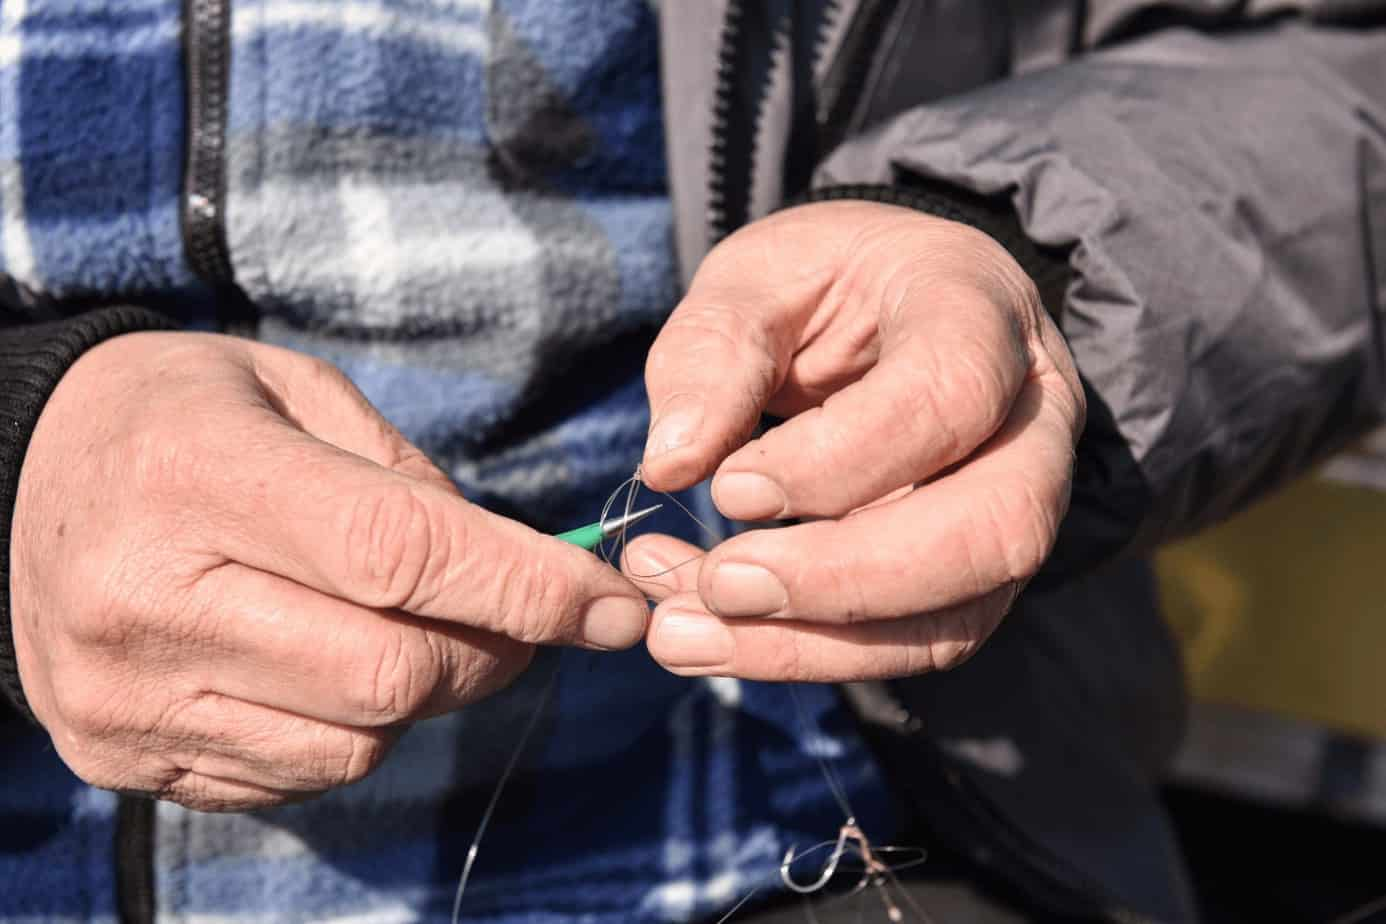 a close-up shot of a man's hand untying a knot